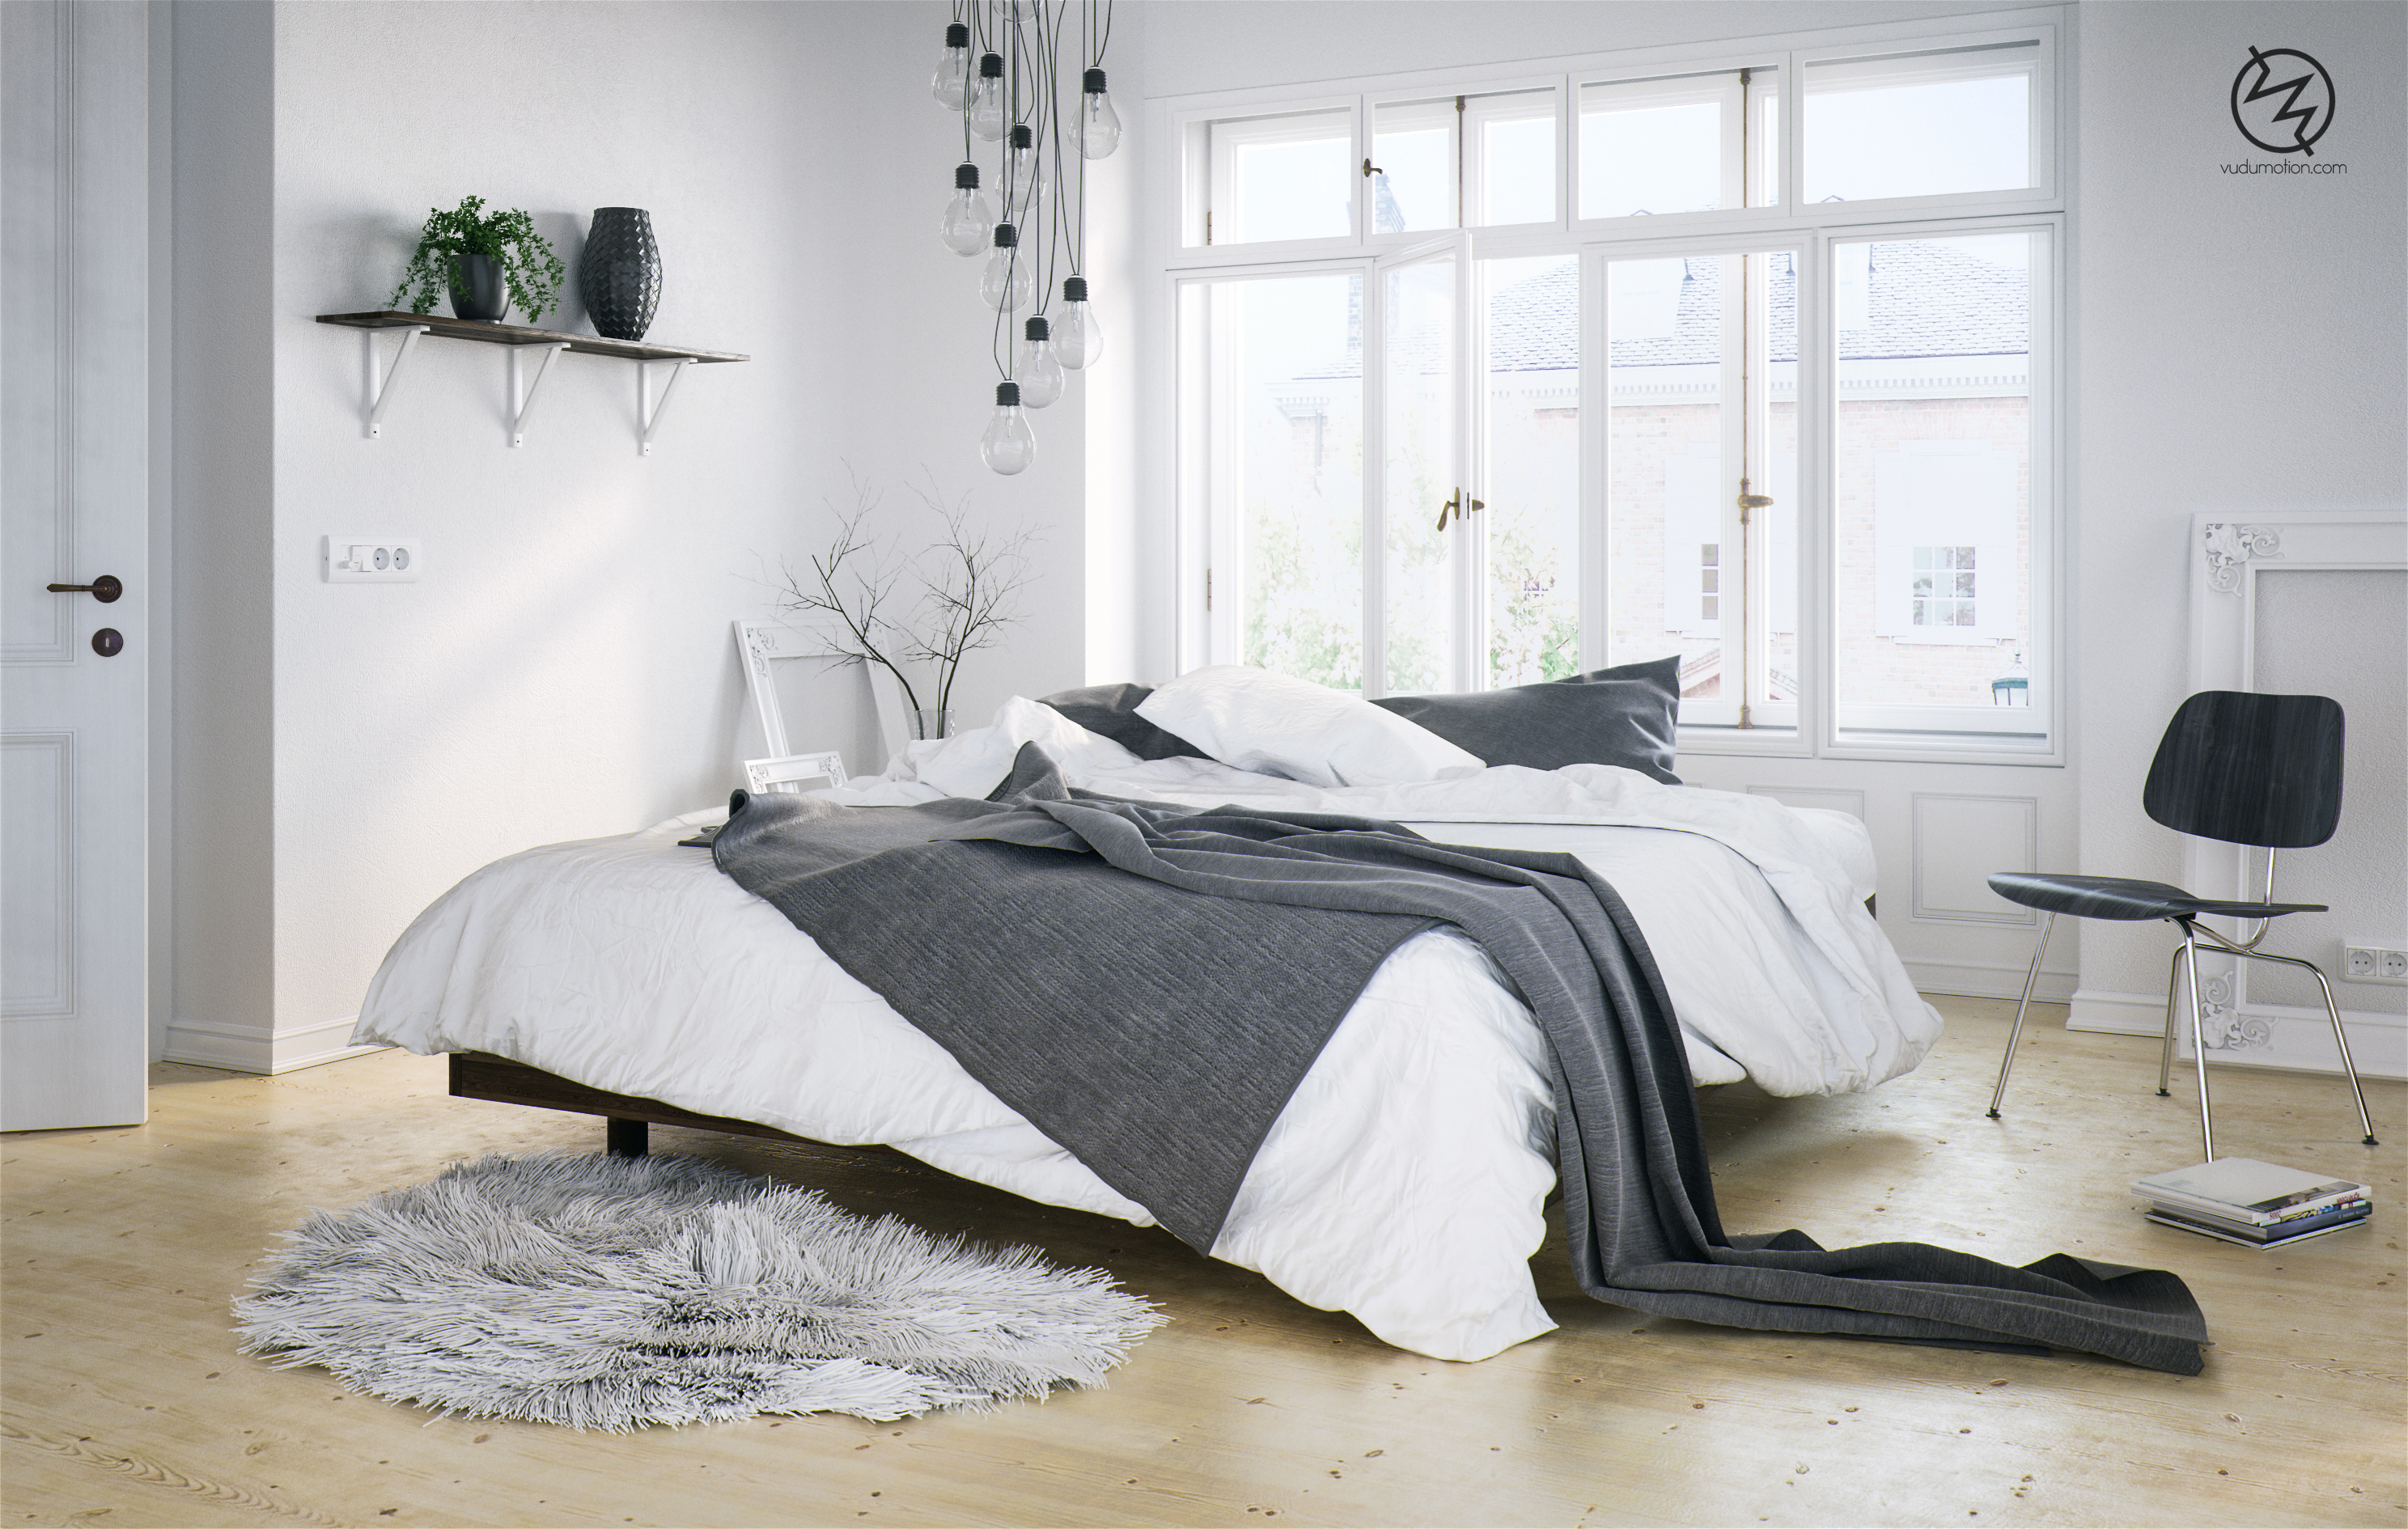 scandinavian bedroom by vudumotion on deviantart. Black Bedroom Furniture Sets. Home Design Ideas